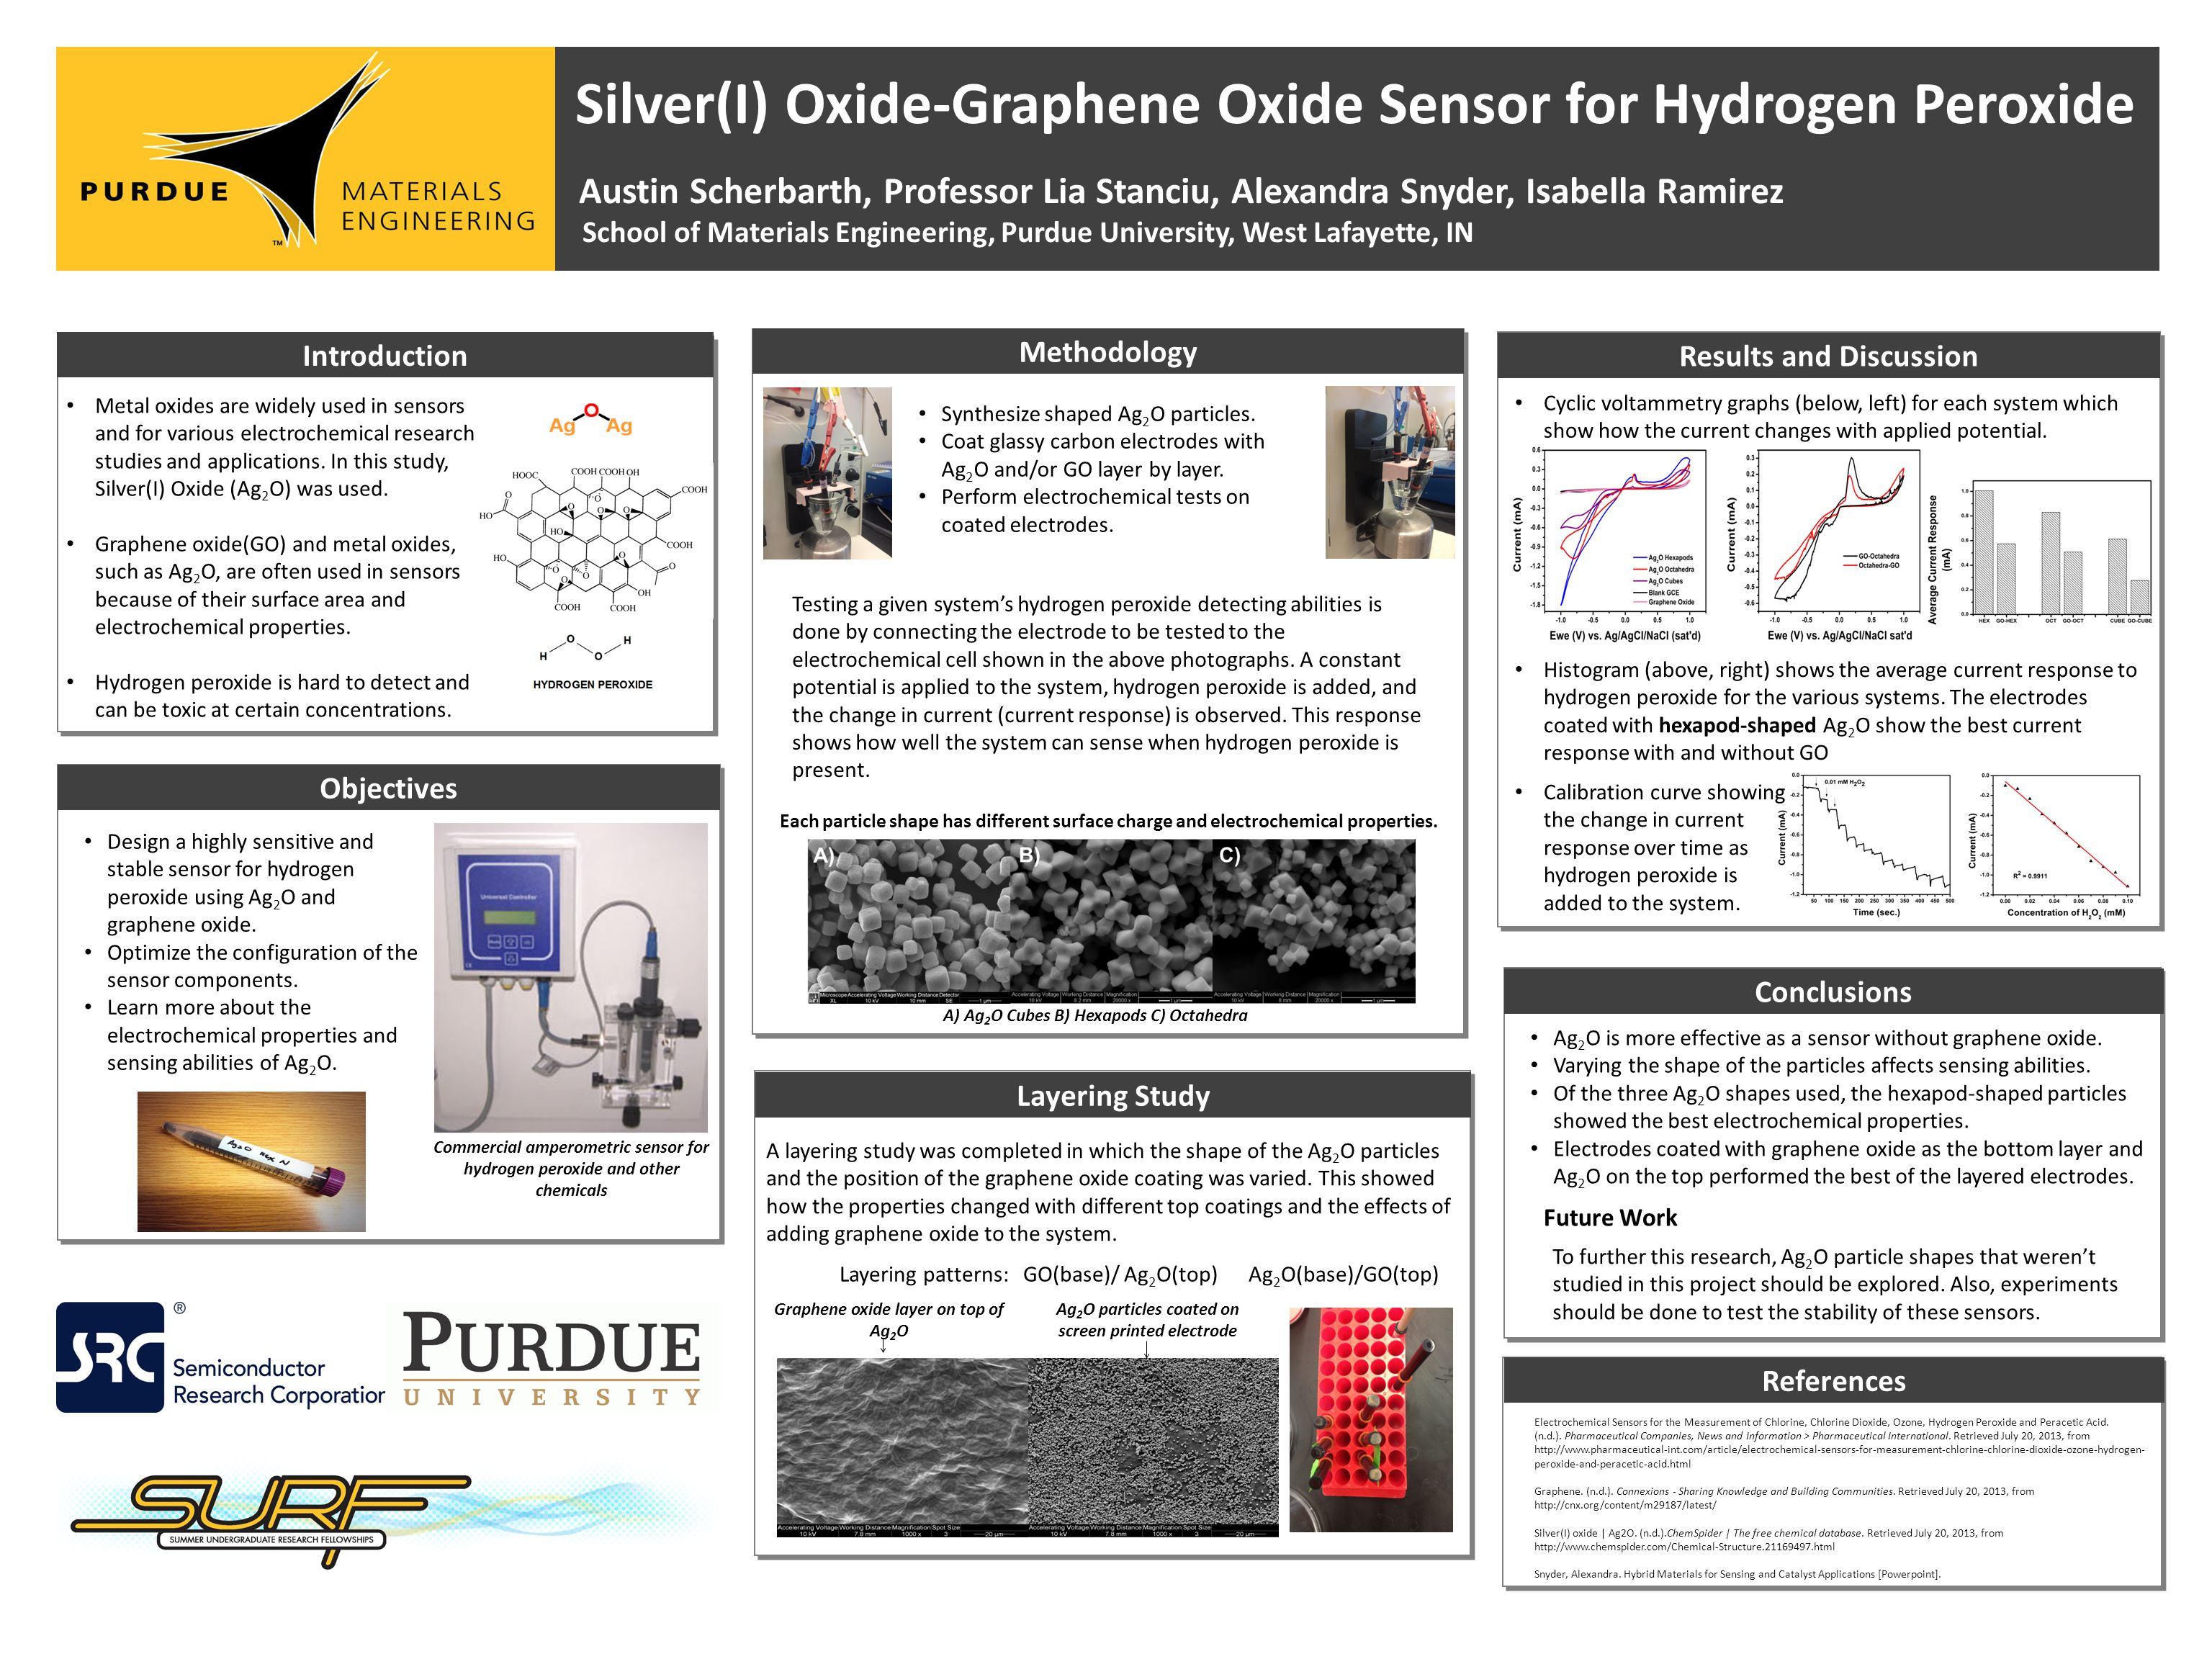 Introduction Silver(I) Oxide-Graphene Oxide Sensor for Hydrogen Peroxide Austin Scherbarth, Professor Lia Stanciu, Alexandra Snyder, Isabella Ramirez School of Materials Engineering, Purdue University, West Lafayette, IN In-Situ Oxidative Polymerization via Spin Coating Methodology Results and Discussion Conclusions References Metal oxides are widely used in sensors and for various electrochemical research studies and applications.